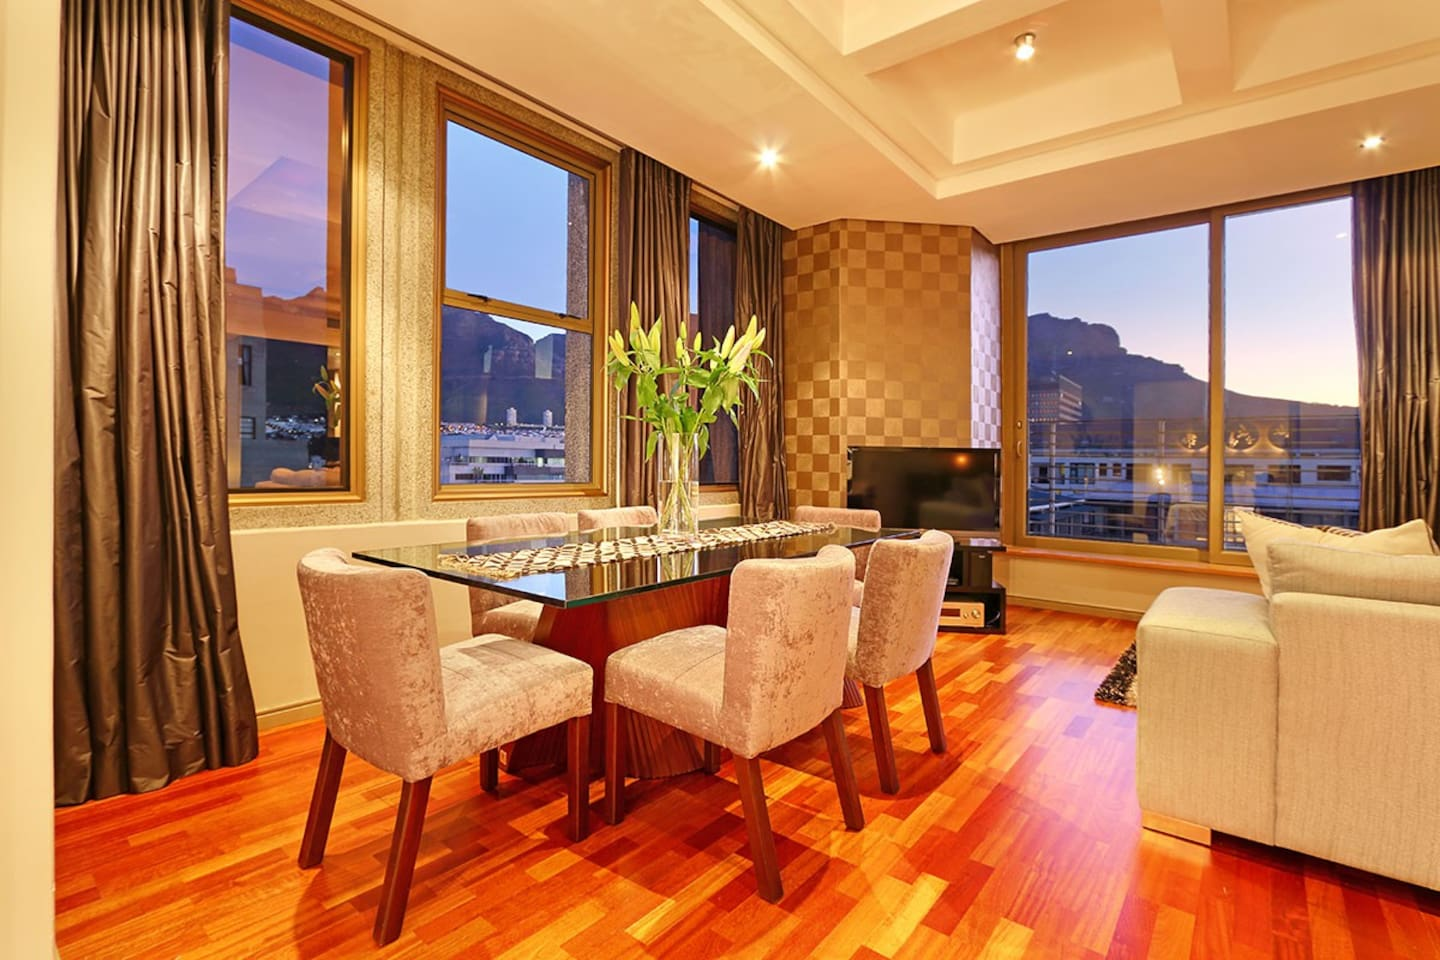 Cartwright's 1203 has magnificent views of Table Mountain from bedrooms, lounge and 6-seater dining table